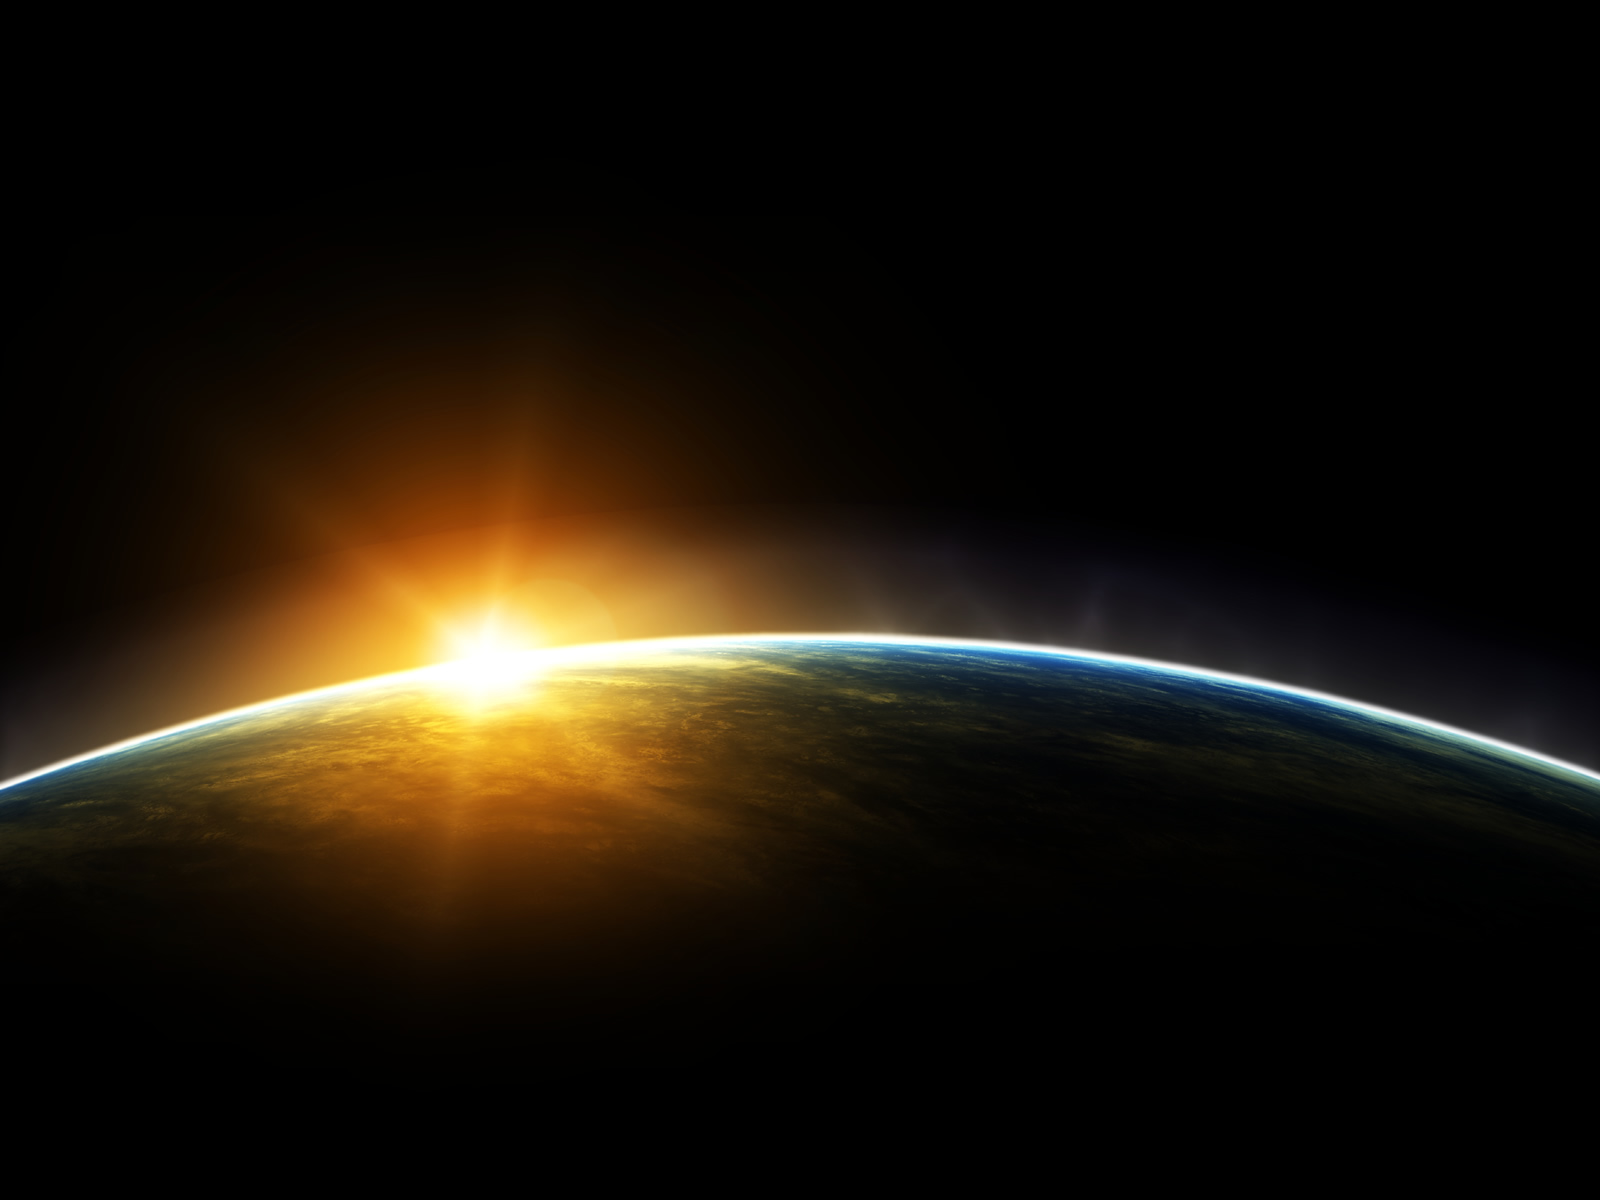 3d Space Background Wallpaper: 3D Space Wallpapers